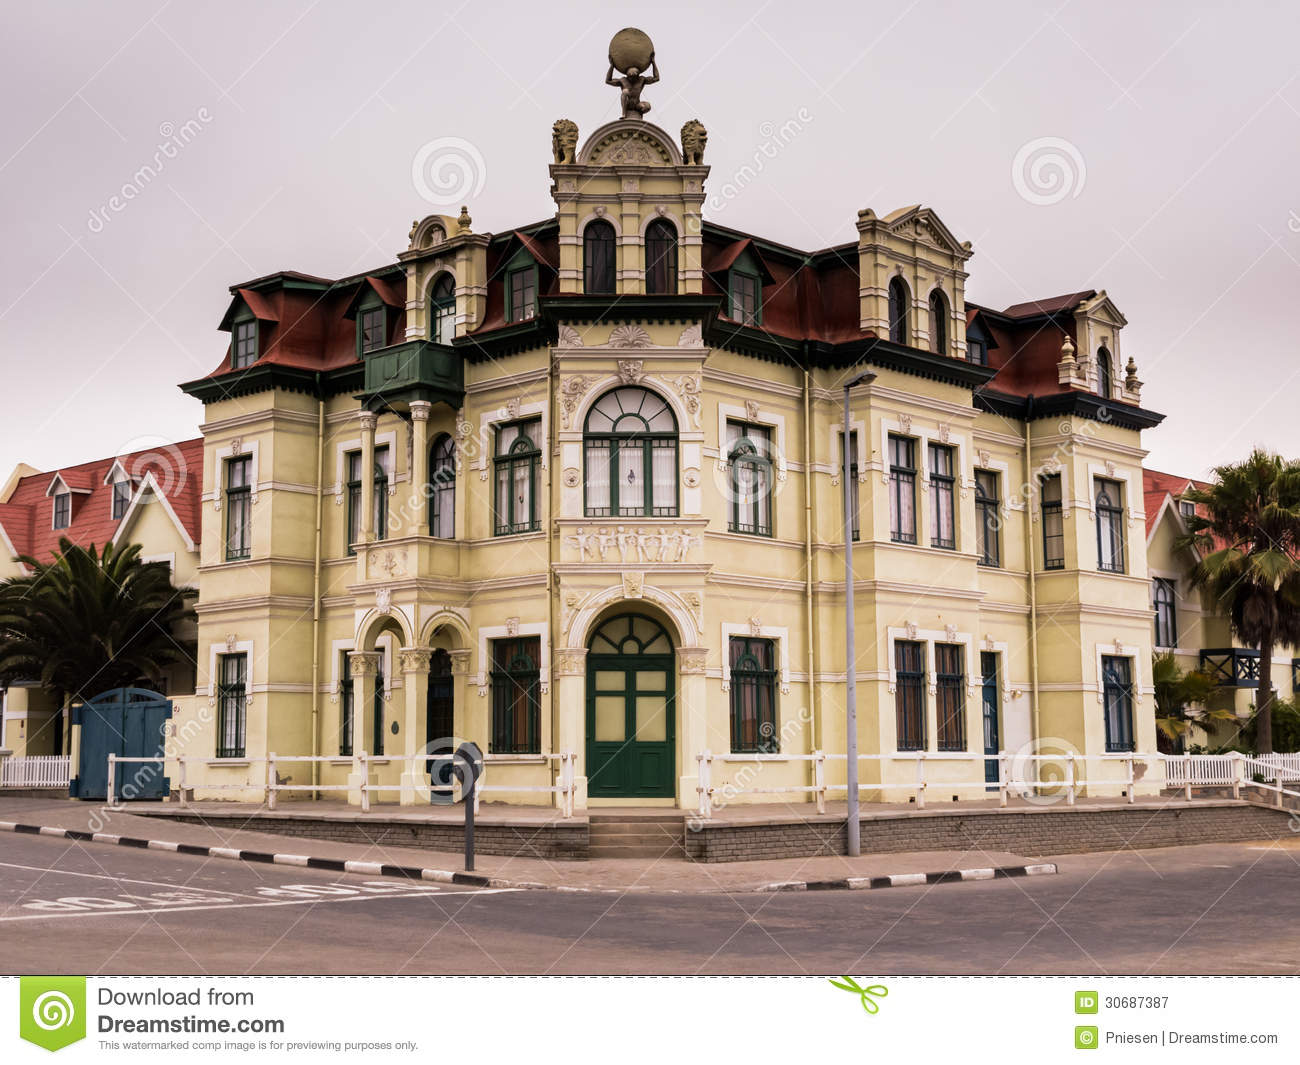 German Style Building In The Namibian Town Of Swakopmund Royalty Free ...